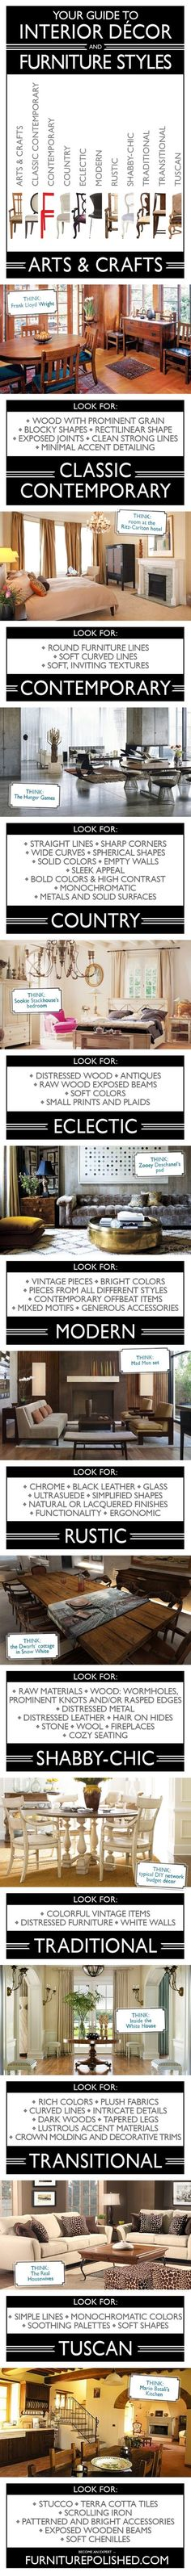 Interior Decor & Furniture Styles Guide